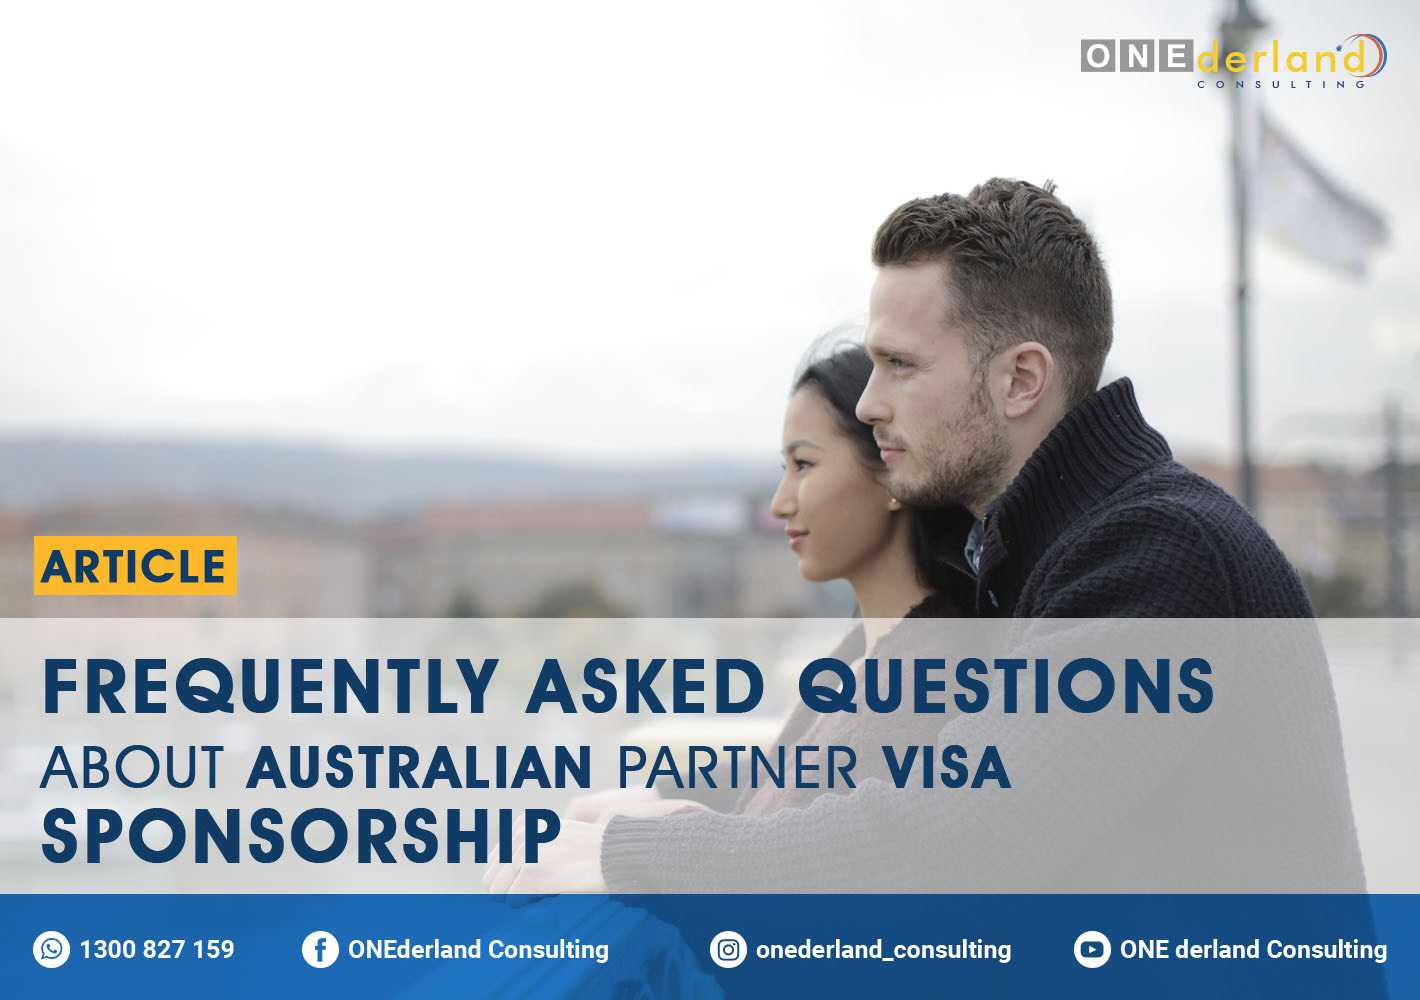 Australian Partner Visa Sponsorship Frequently Asked Questions (FAQ)